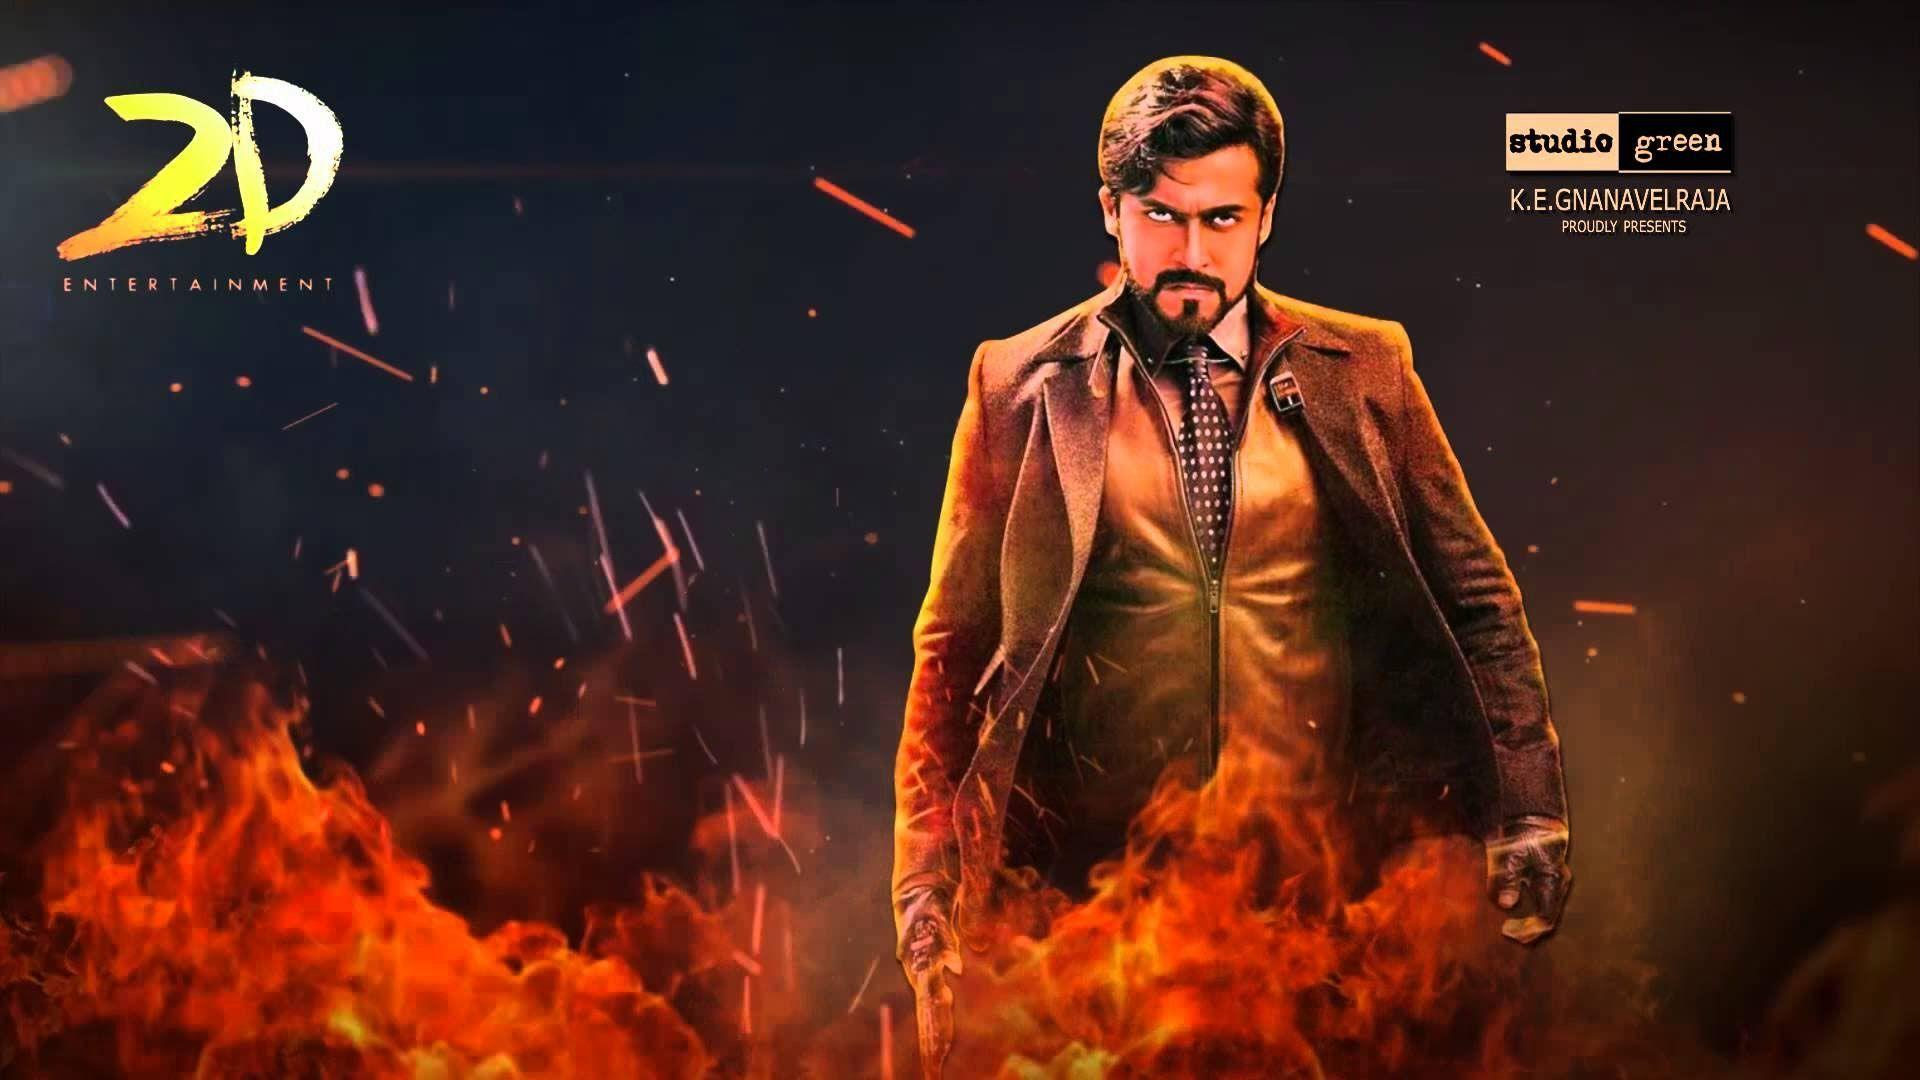 Surya hd wallpapers 2016 wallpaper cave 24 movie telugu full length movie surya samantha 2016 youtube thecheapjerseys Choice Image